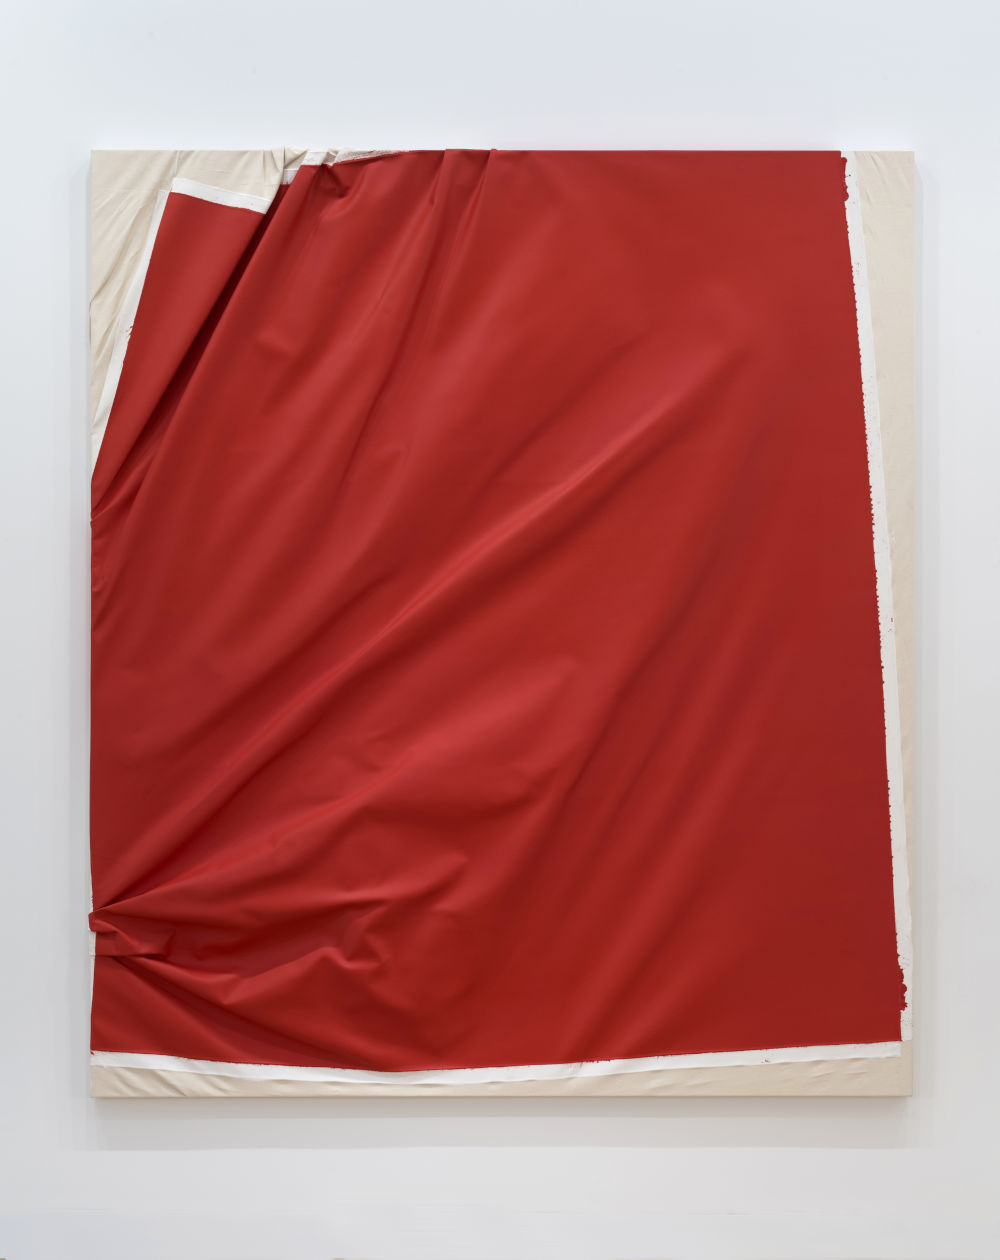 Steven Parrino, For Pierre Huber, 1990. Acrylic on canvas 96 x 84 inches 244 x 213.3 cm. Signed and dated S. Parrino 1990 (on the stretcher)